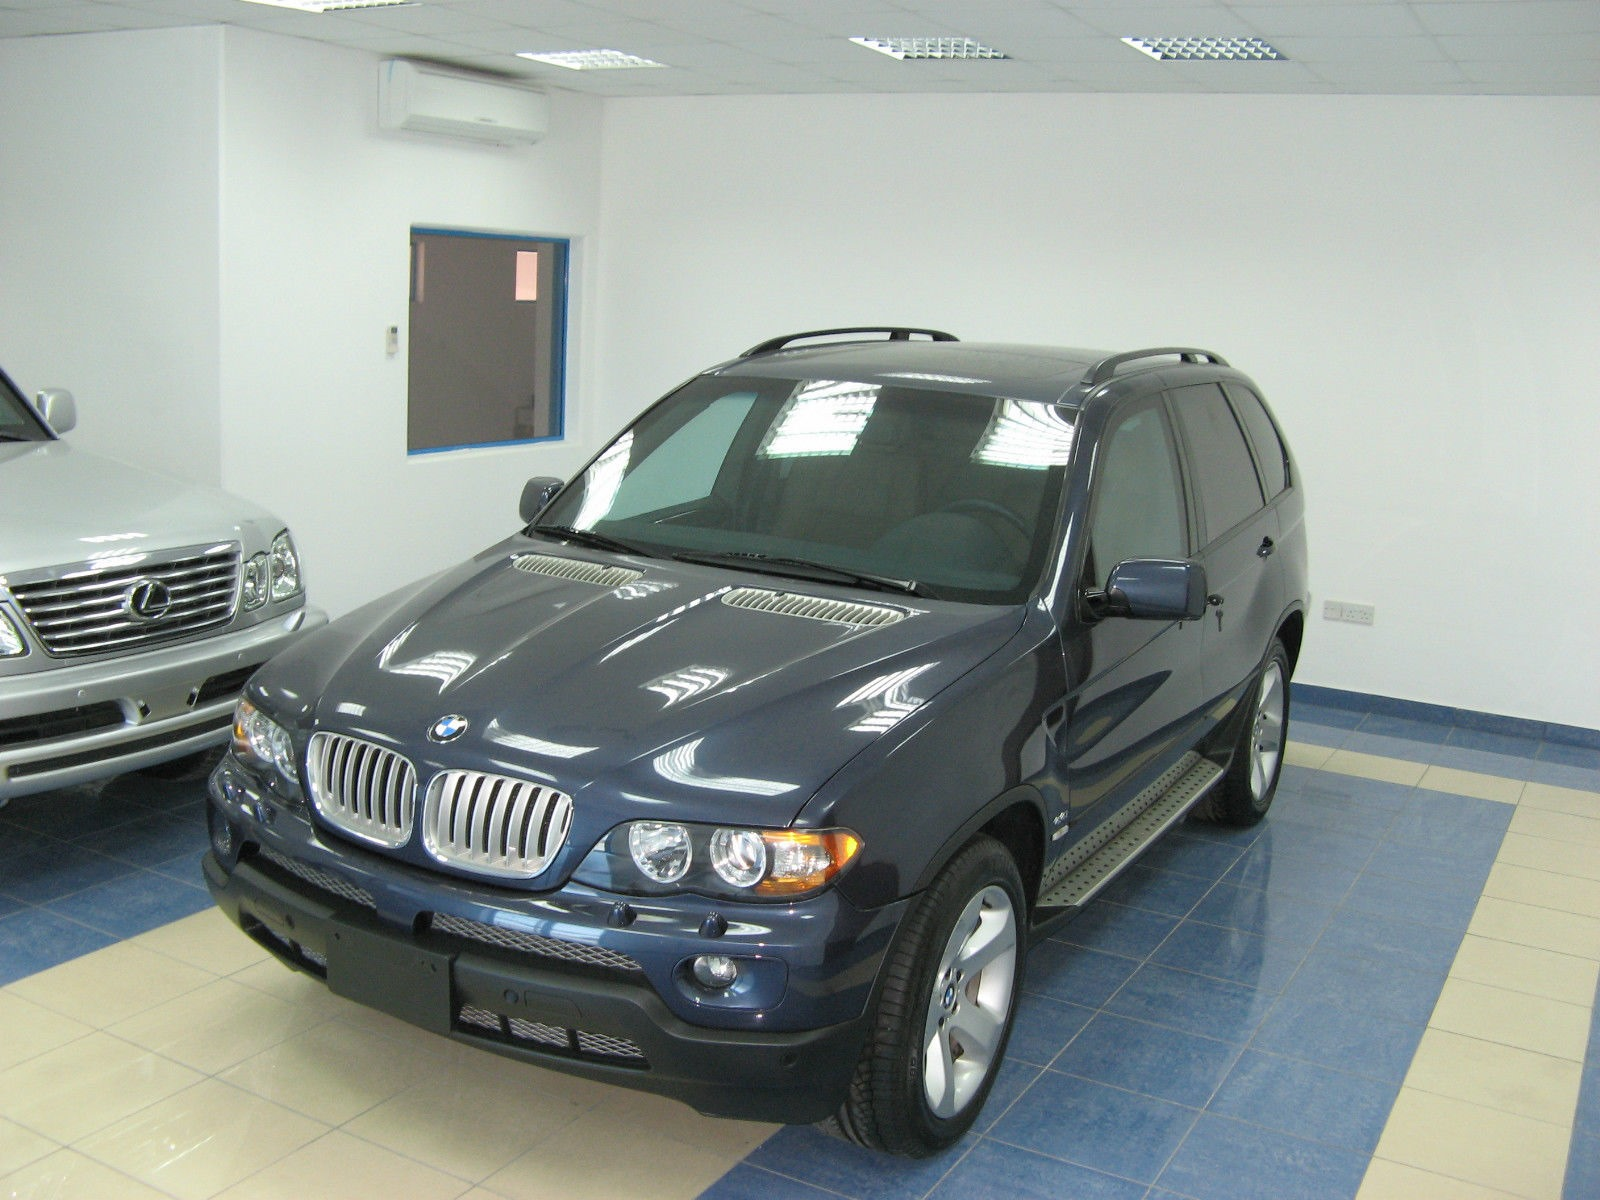 2004 bmw x5 up for sale for 110 000 autoevolution. Black Bedroom Furniture Sets. Home Design Ideas